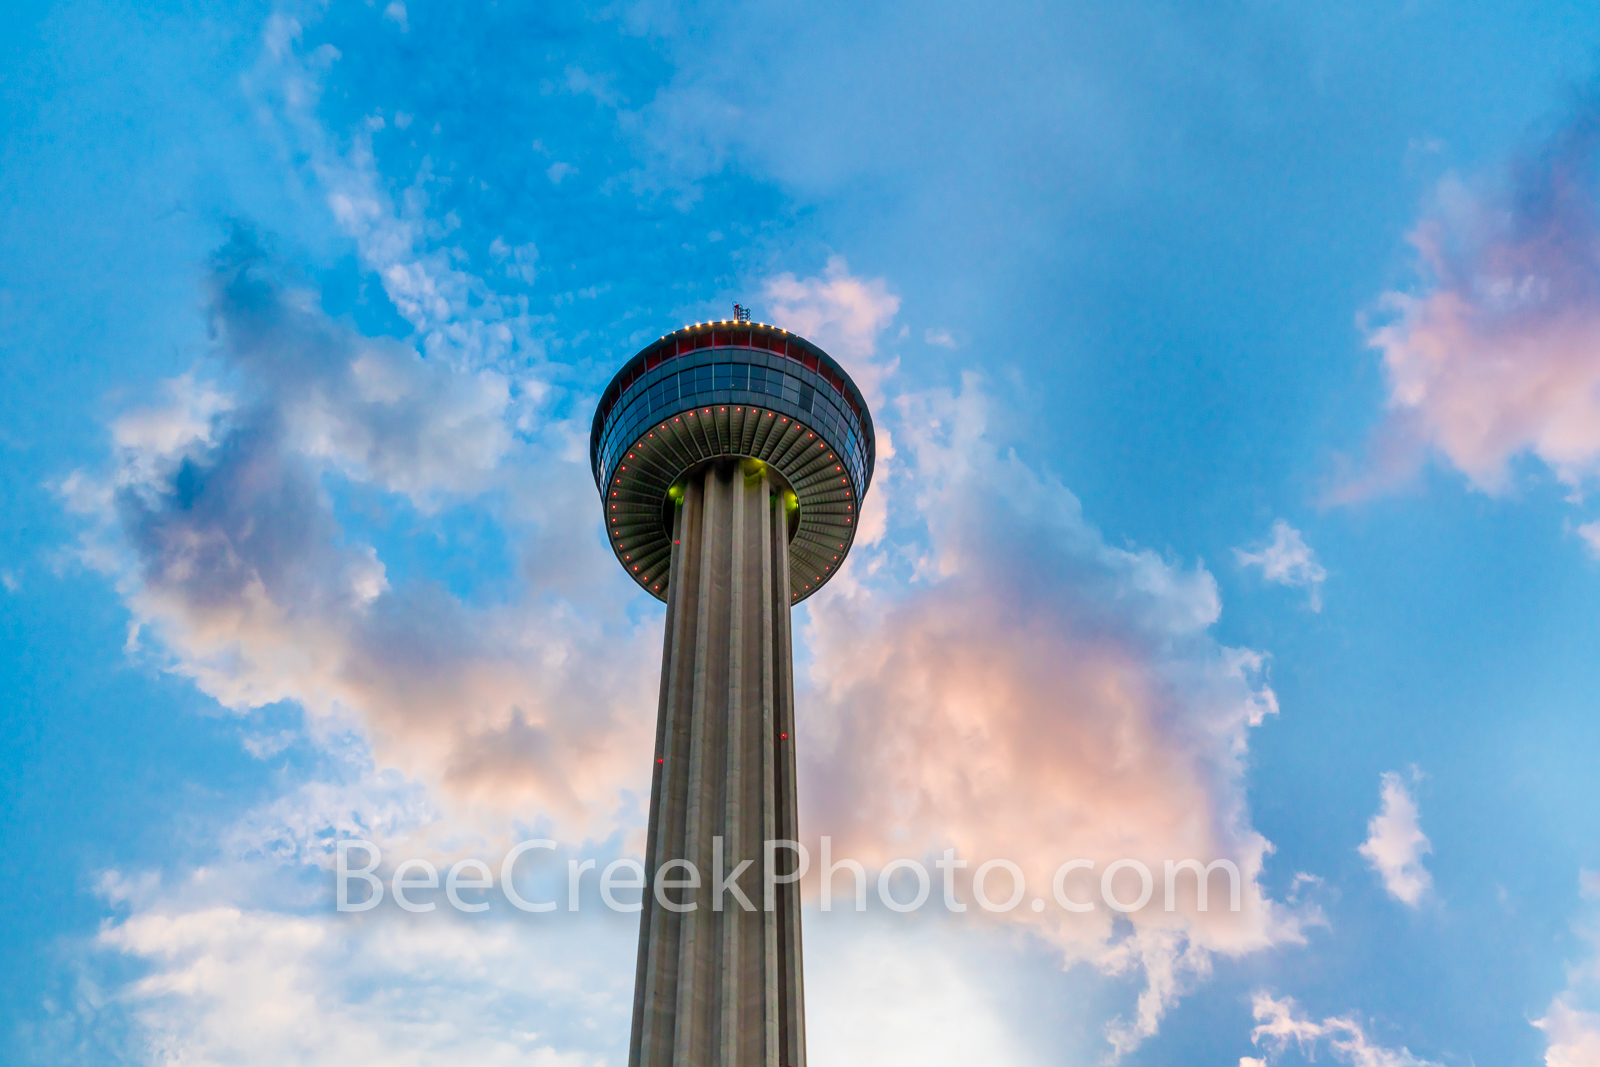 Tower of Americas from Below -The view of the tower of americas from below in downtown San Antonio. The Tower of the Americas...